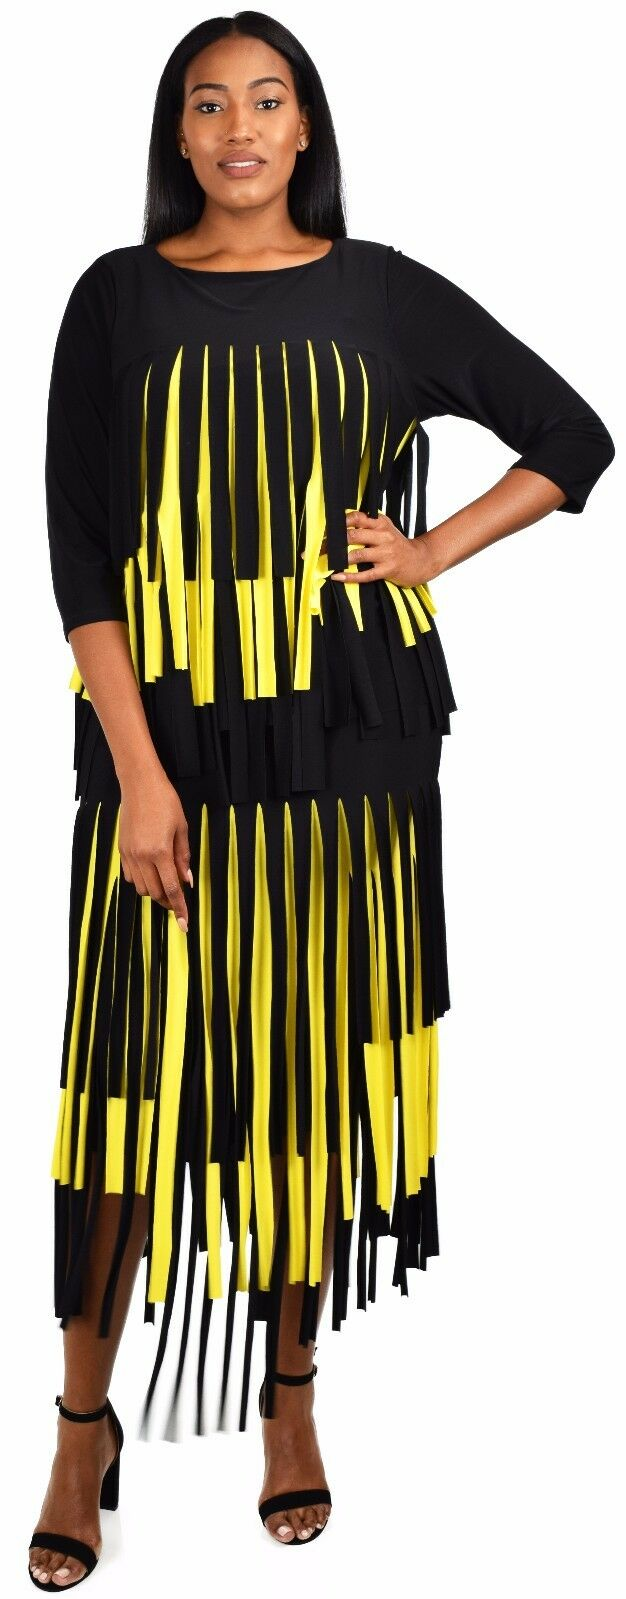 Women 2 Piece Car Wash Skirt Set Maxi Dress Outfit, Regular & Plus Sizes, Yellow